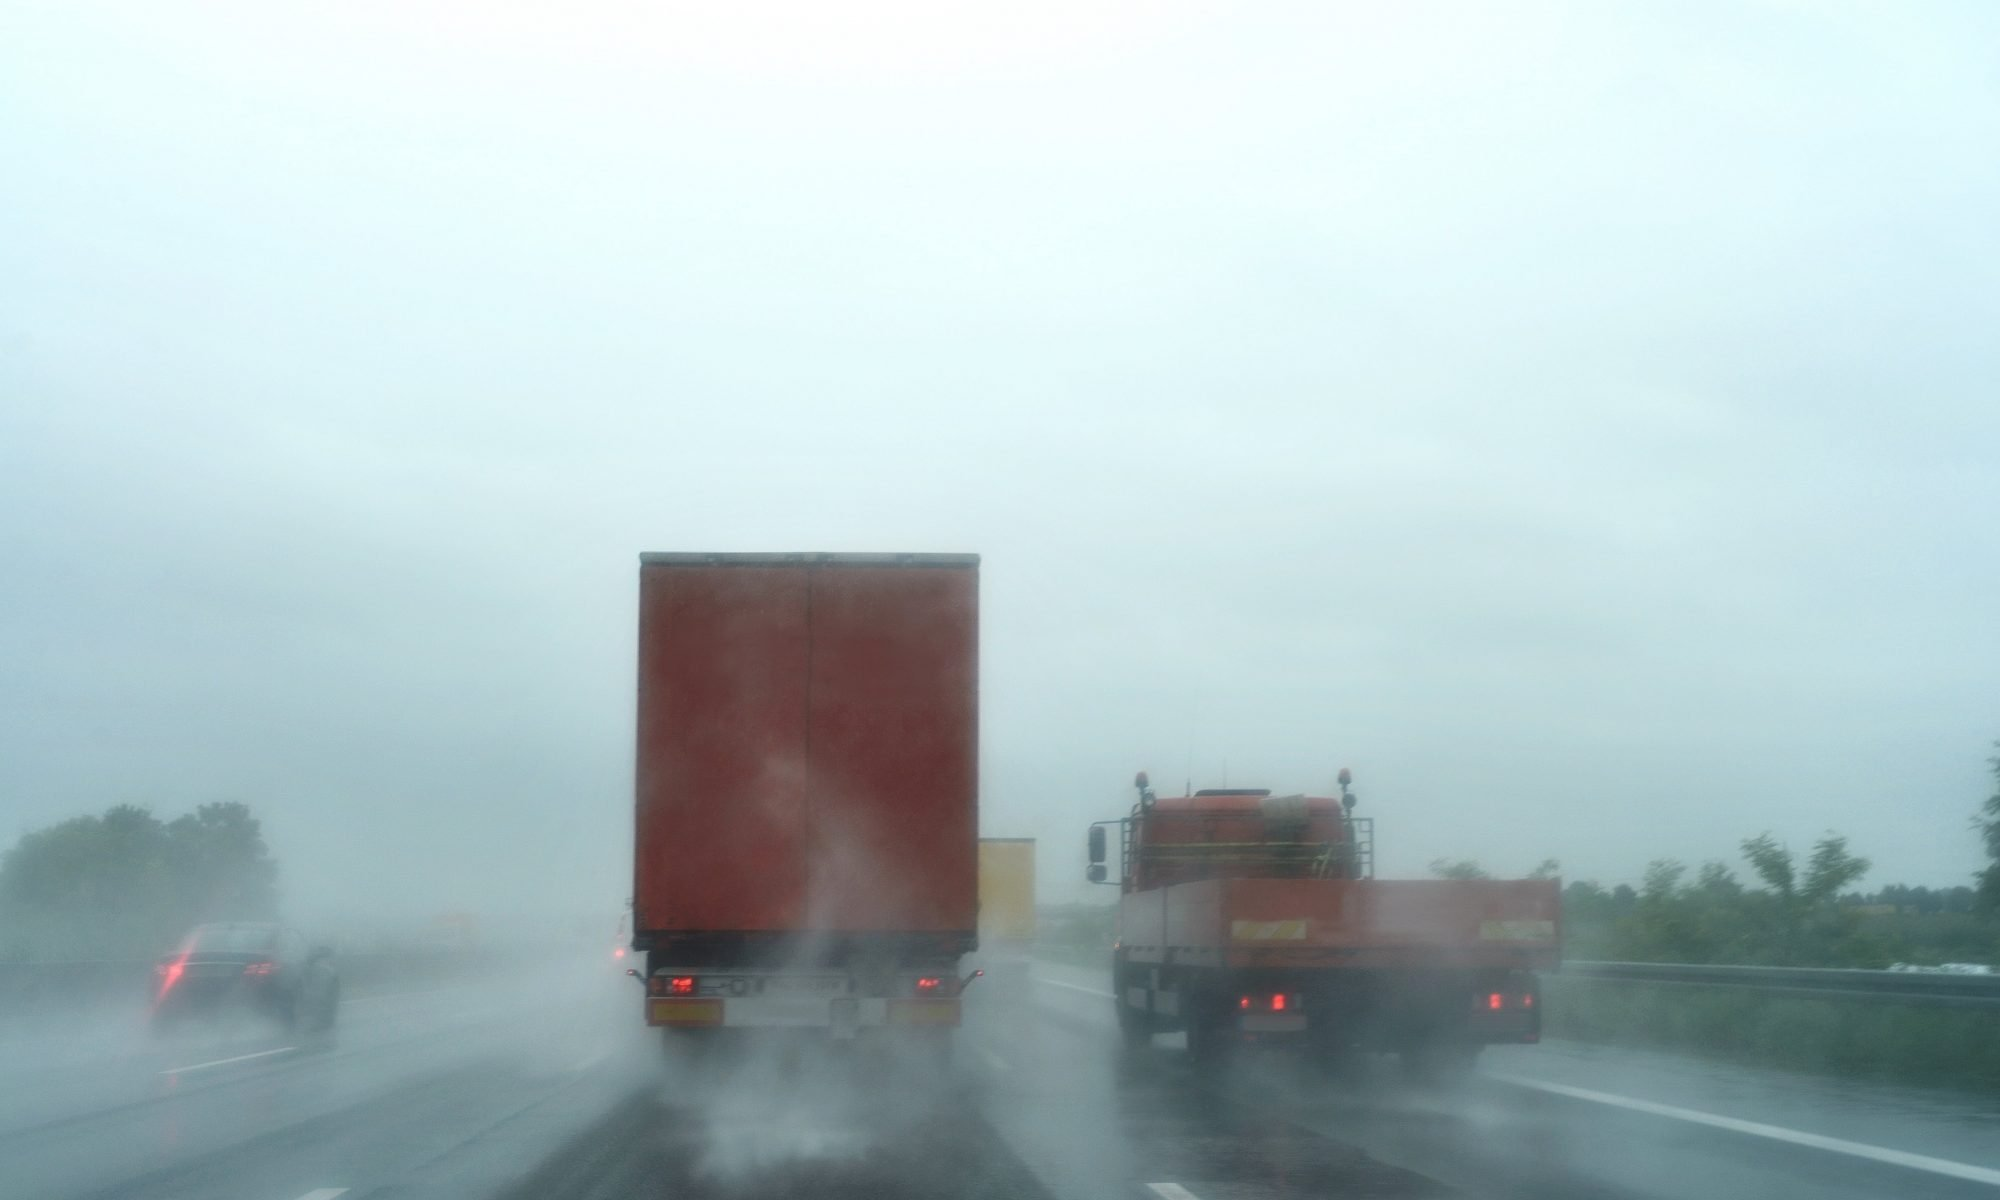 truck driving in adverse weather